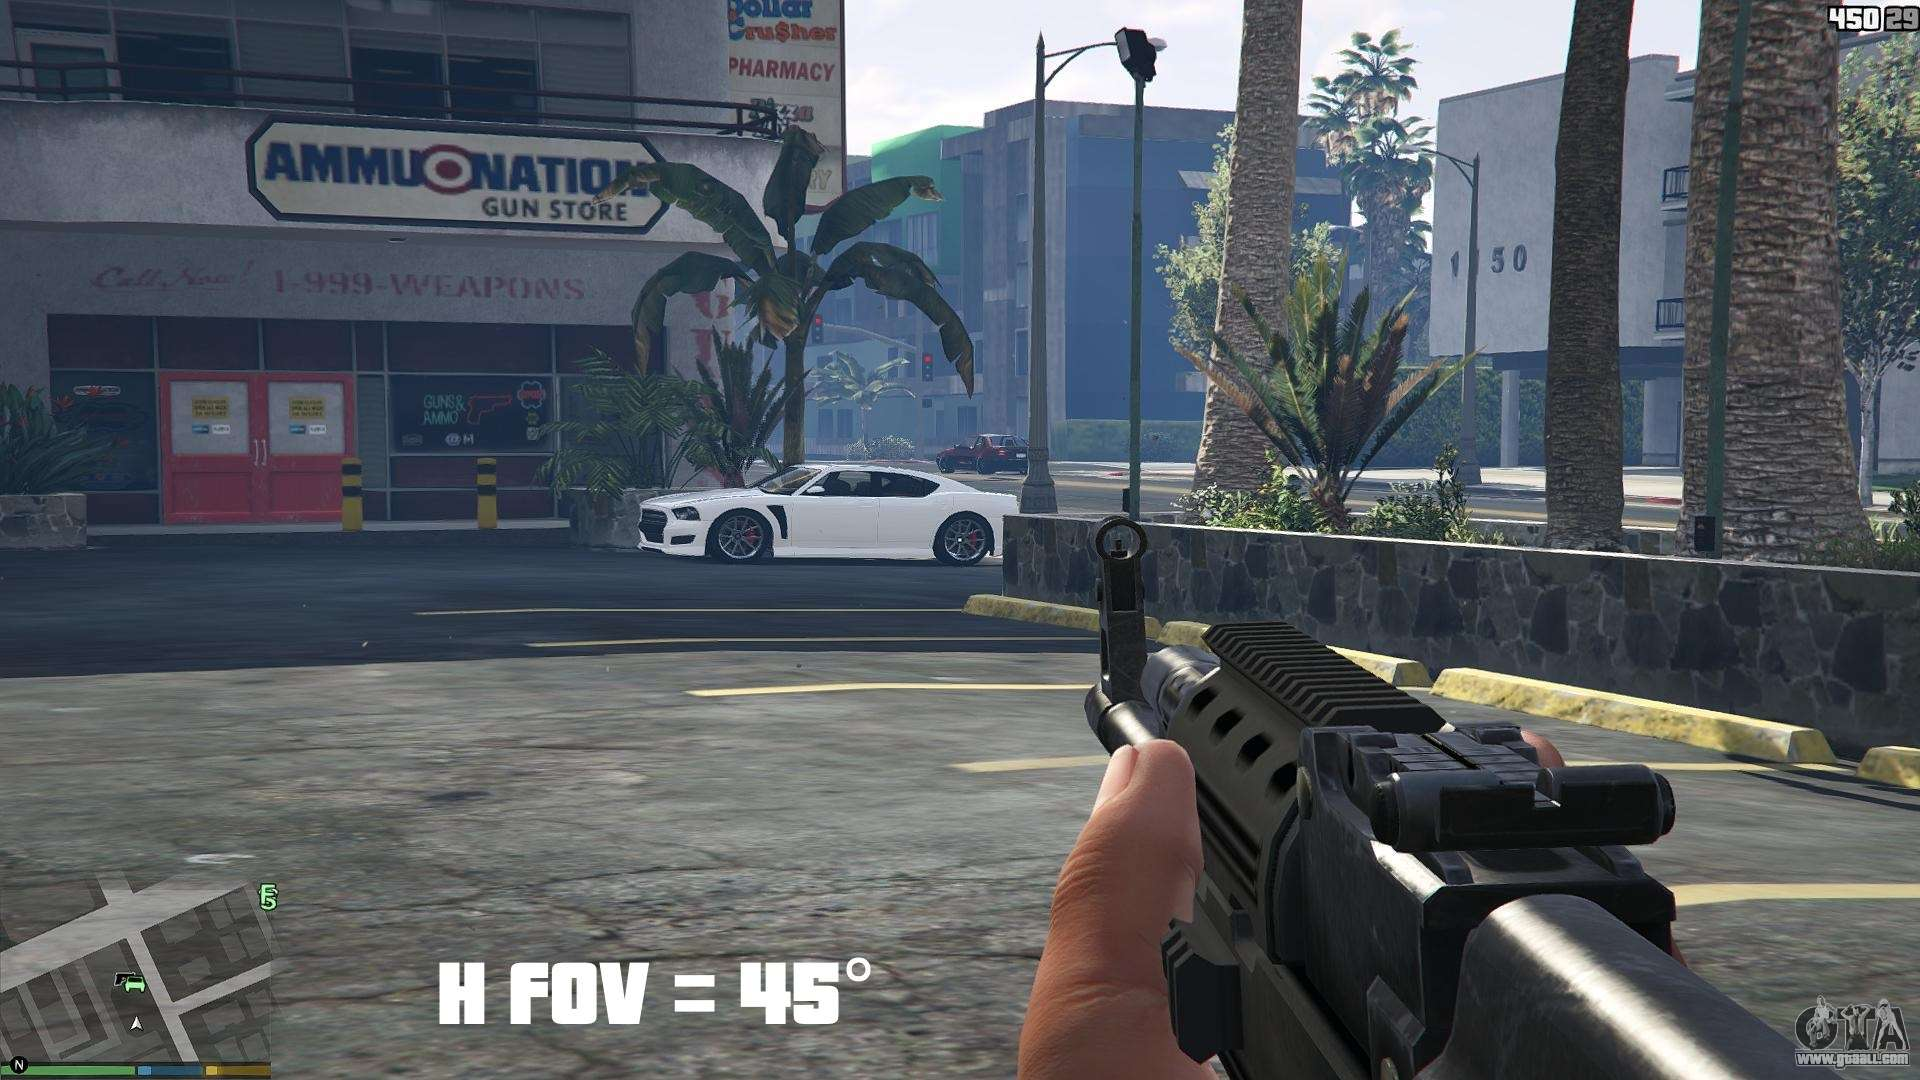 TreffpunktEltern de :: Thema anzeigen - gta 5 download for android